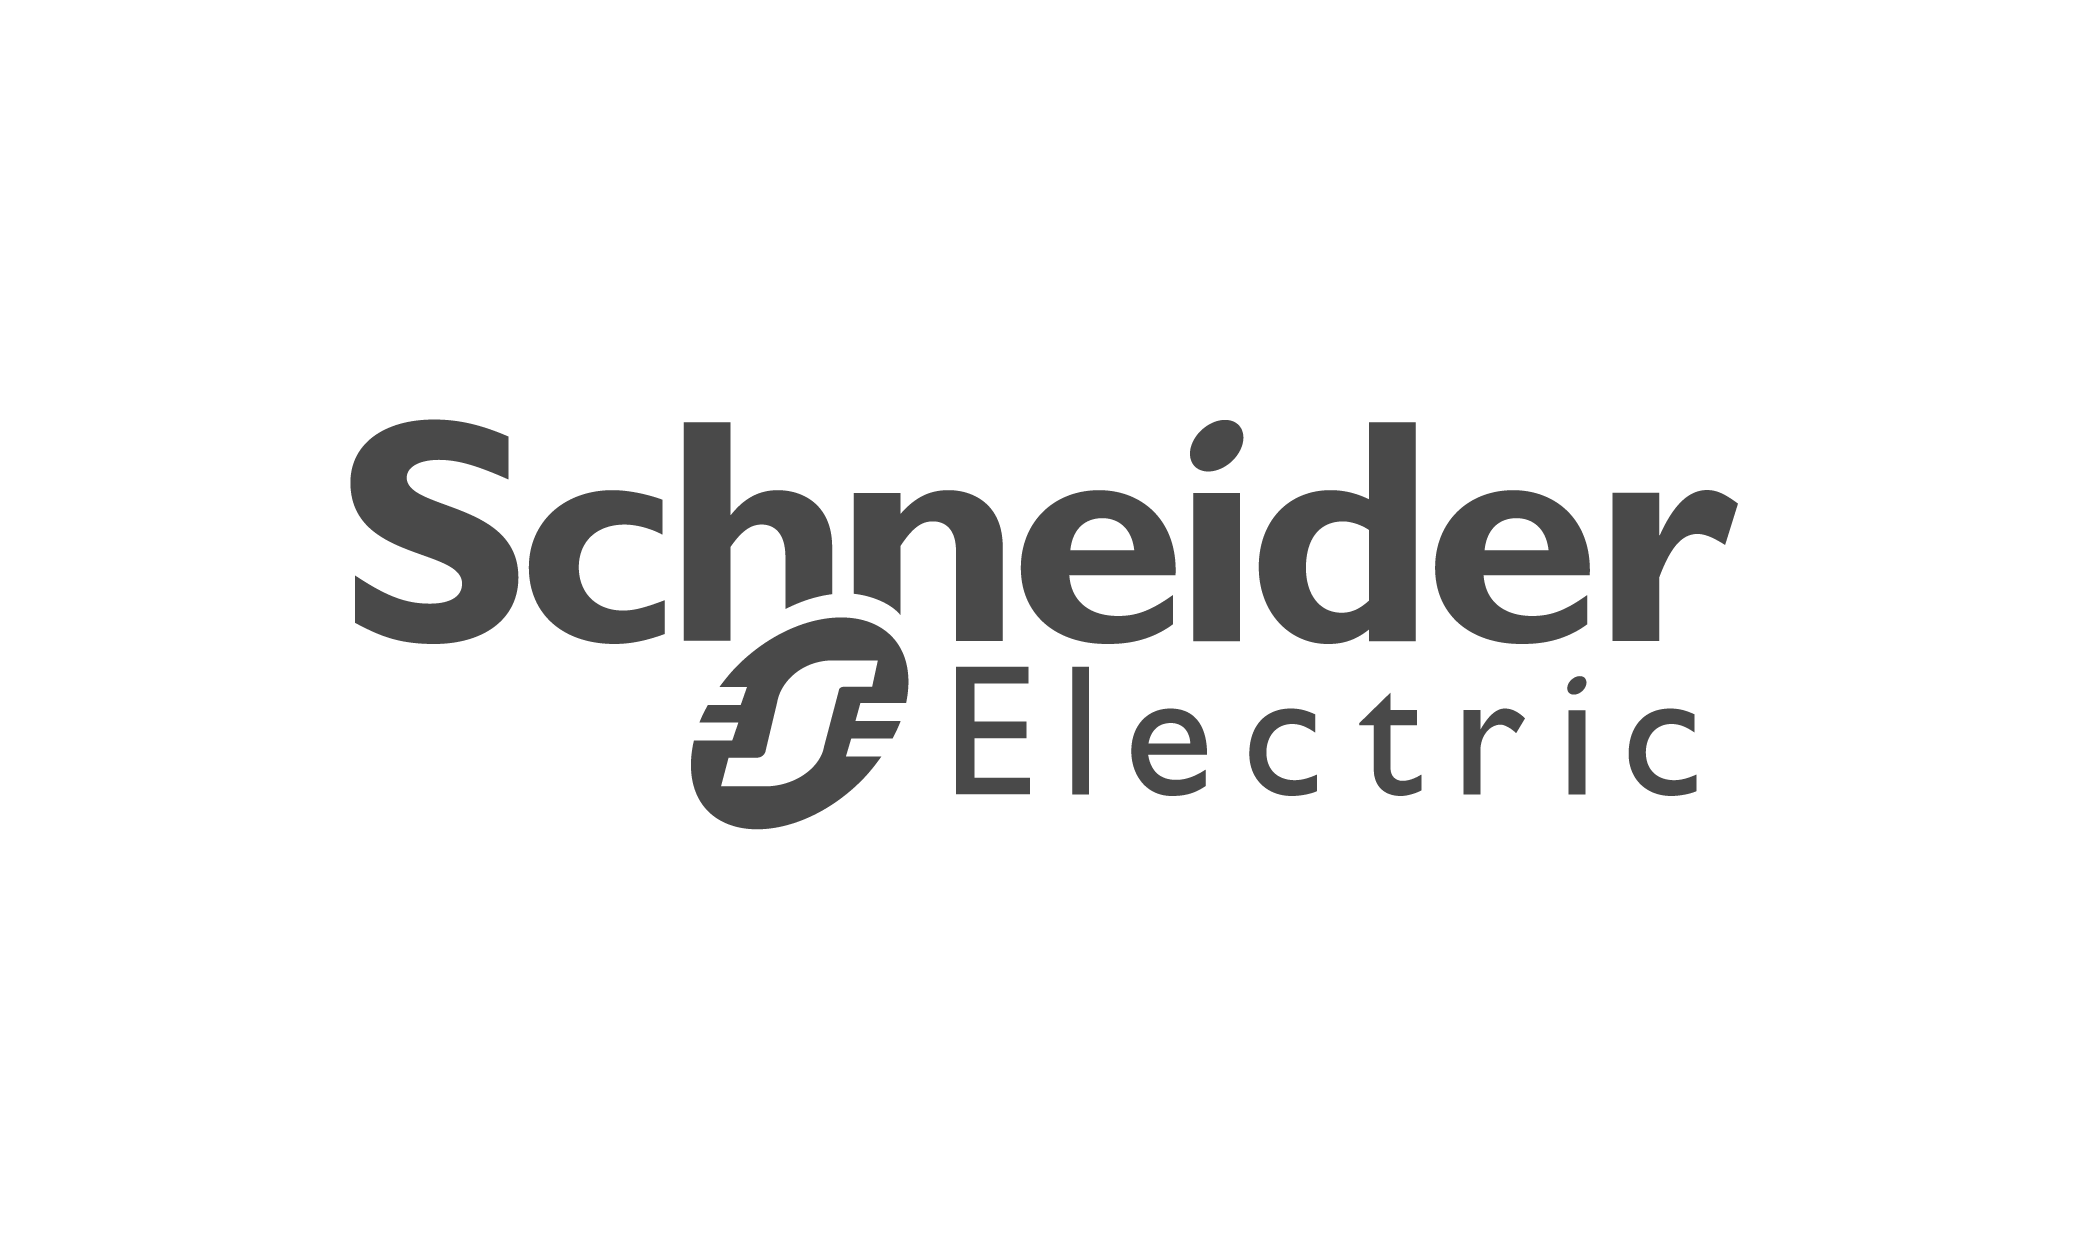 SCHNEIDER ELECTRIC-01.png